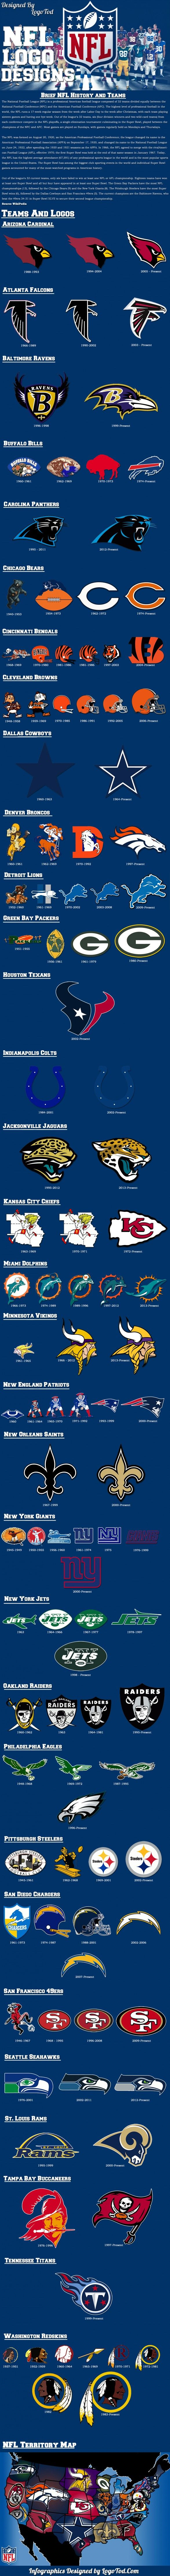 History of NFL Logo Designs with Territory Map